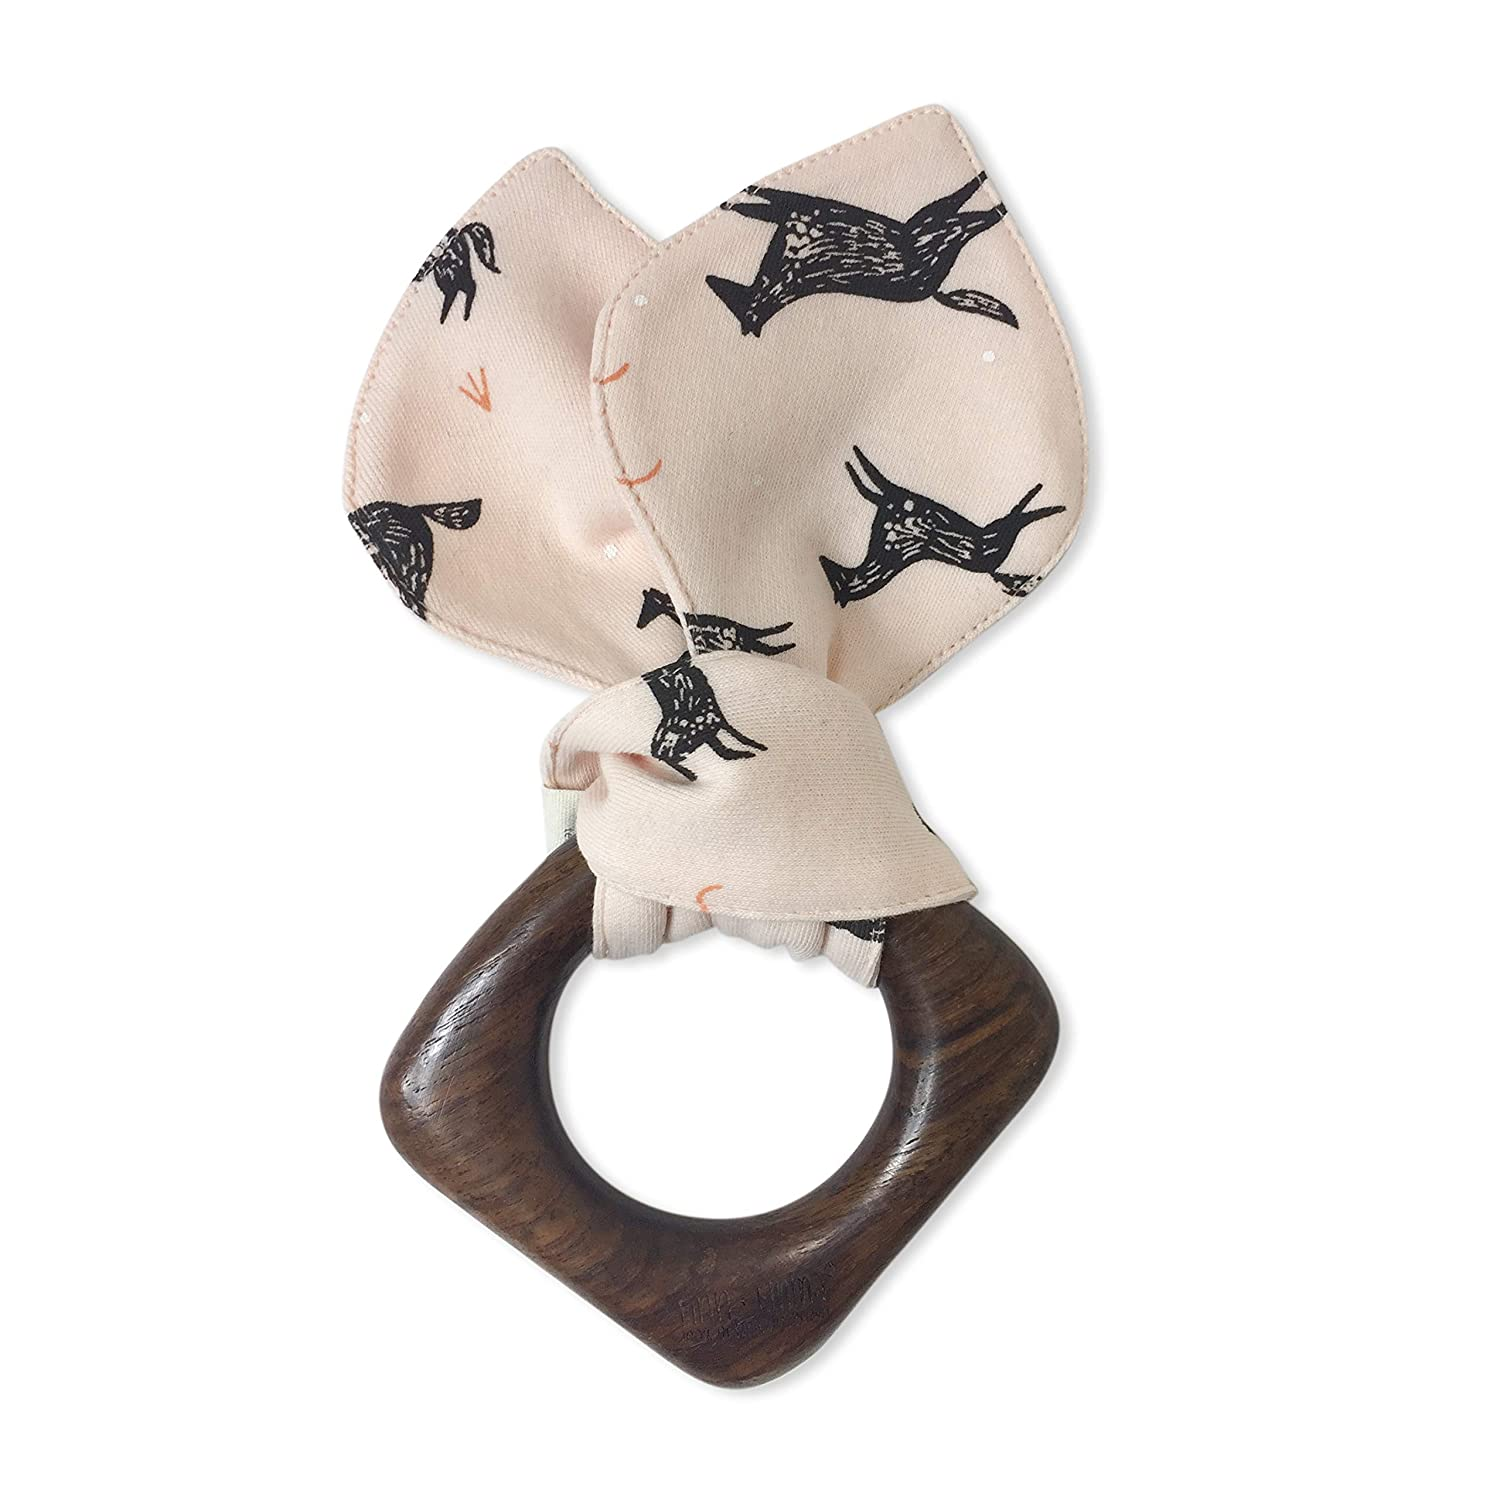 Origami B06-0922a Finn Emma Natural Wood and Organic Cotton Teething Ring for Baby Boy or Girl